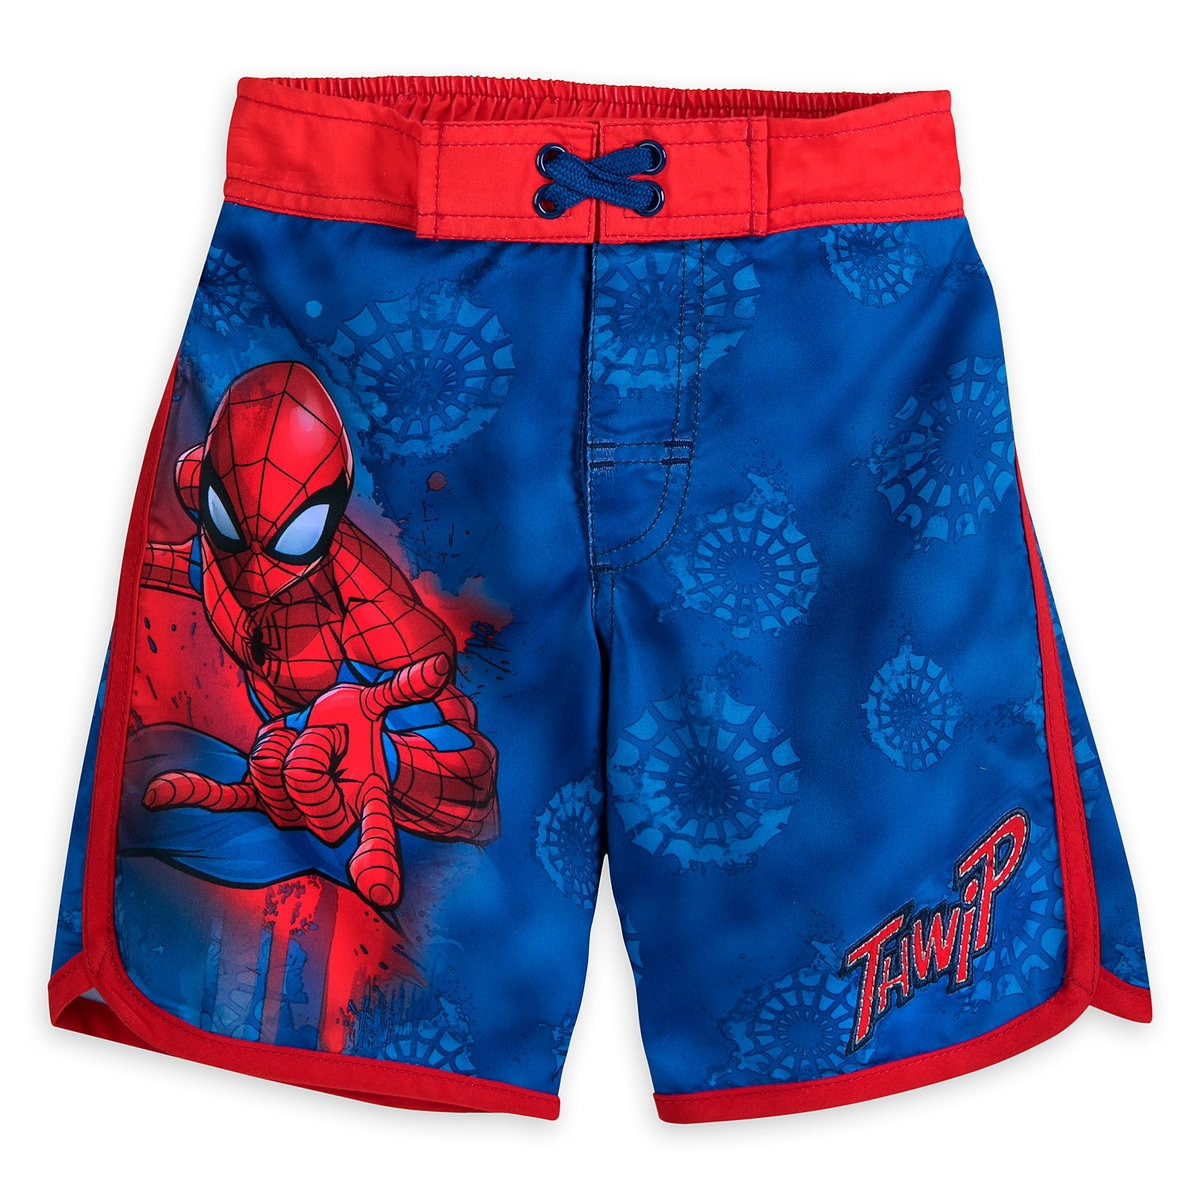 aa391c23aa876 Product Image of Spider-Man Swim Trunks for Boys # 1